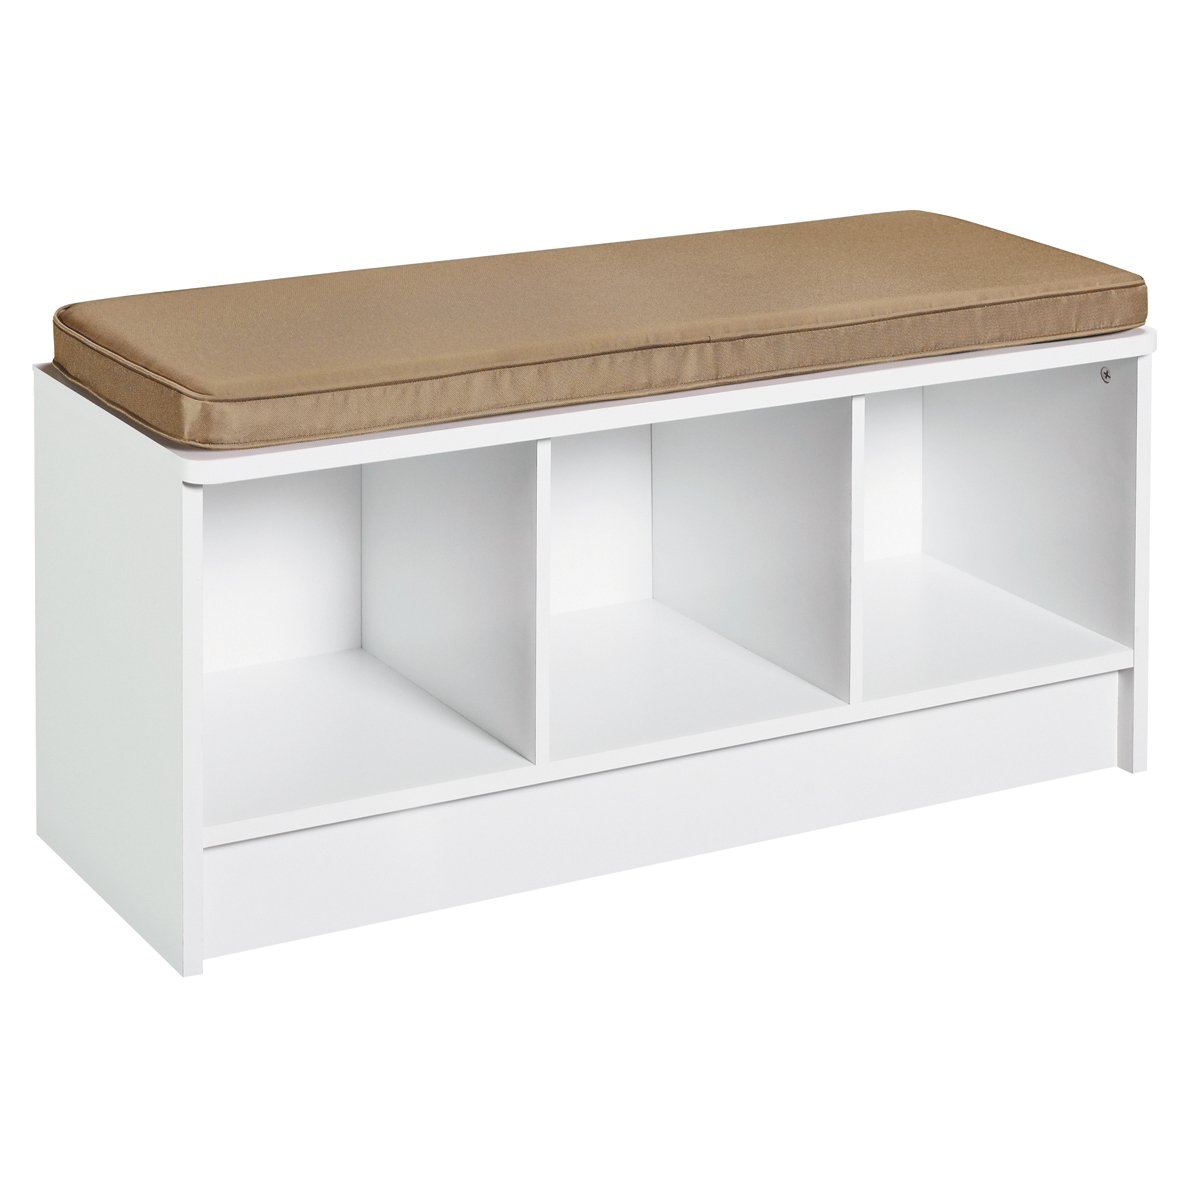 Amazon.com: ClosetMaid 1569 Cubeicals 3 Cube Storage Bench, White: Home U0026  Kitchen